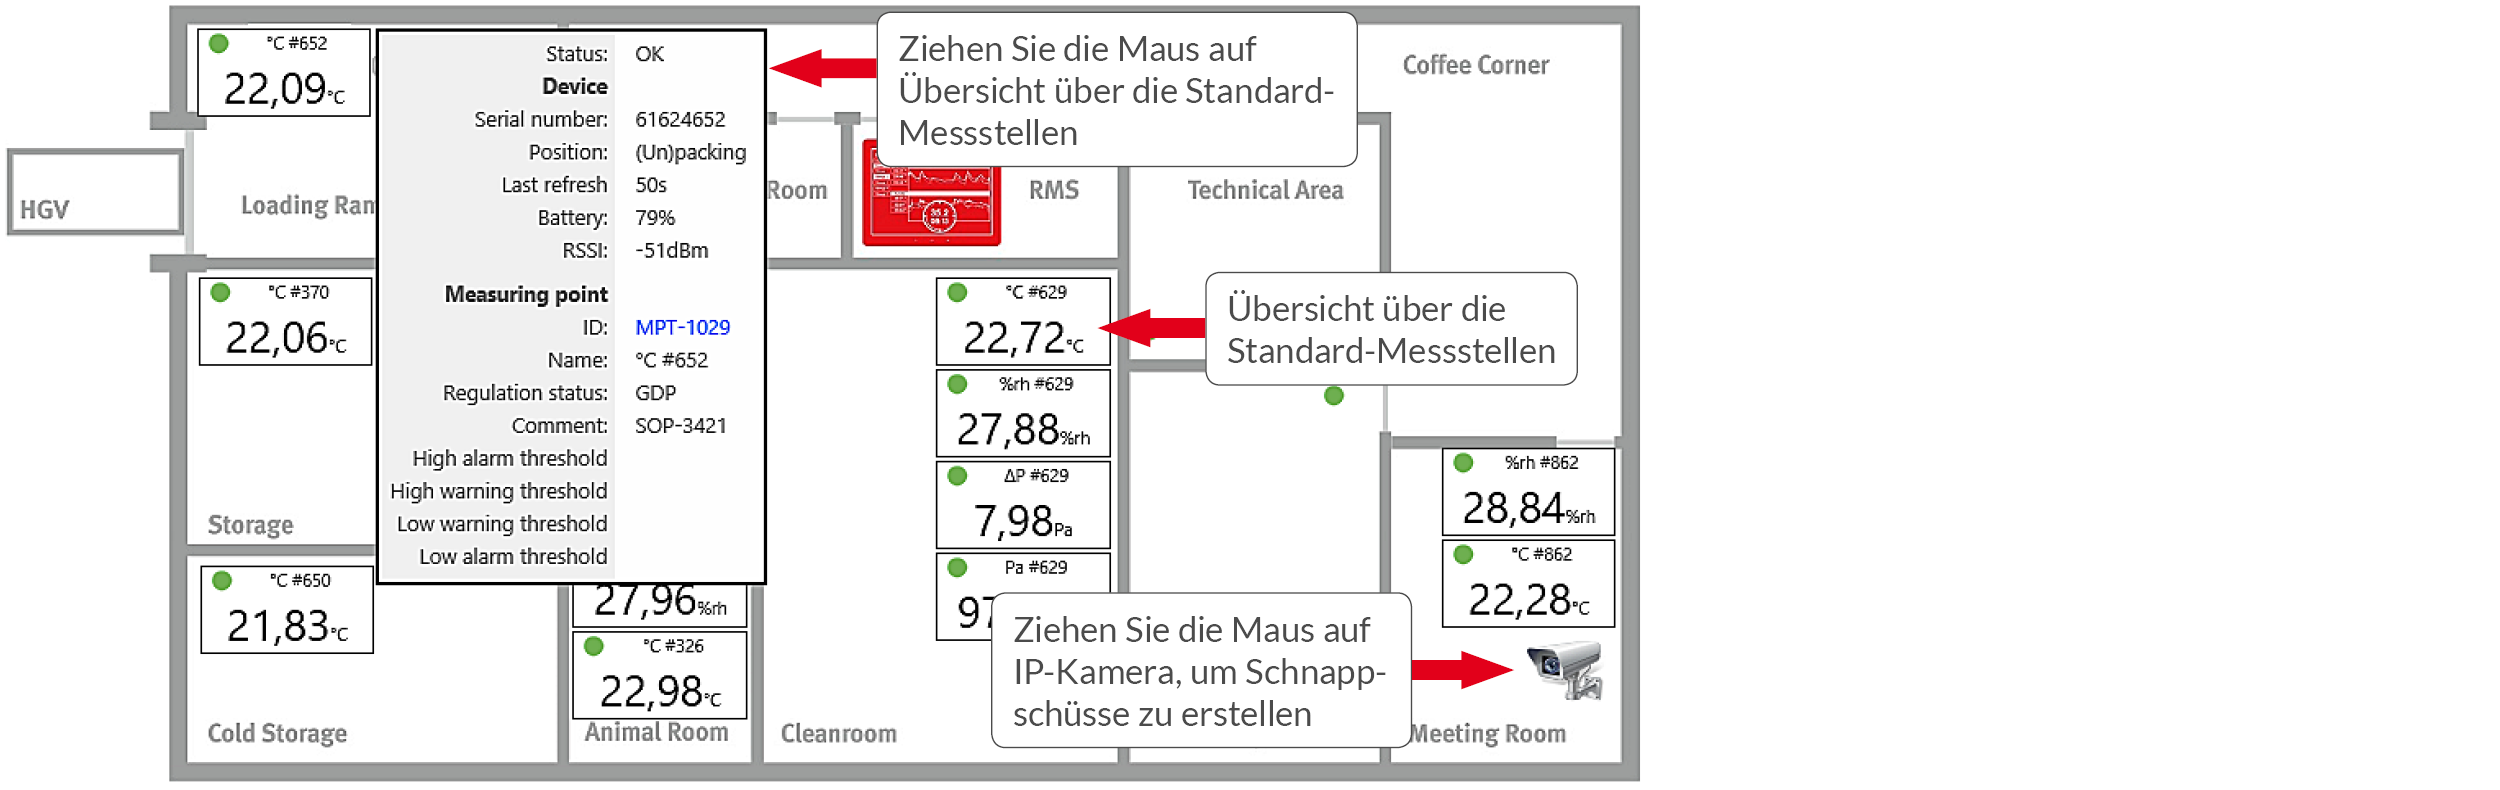 Monitoring System - Layout Ansicht